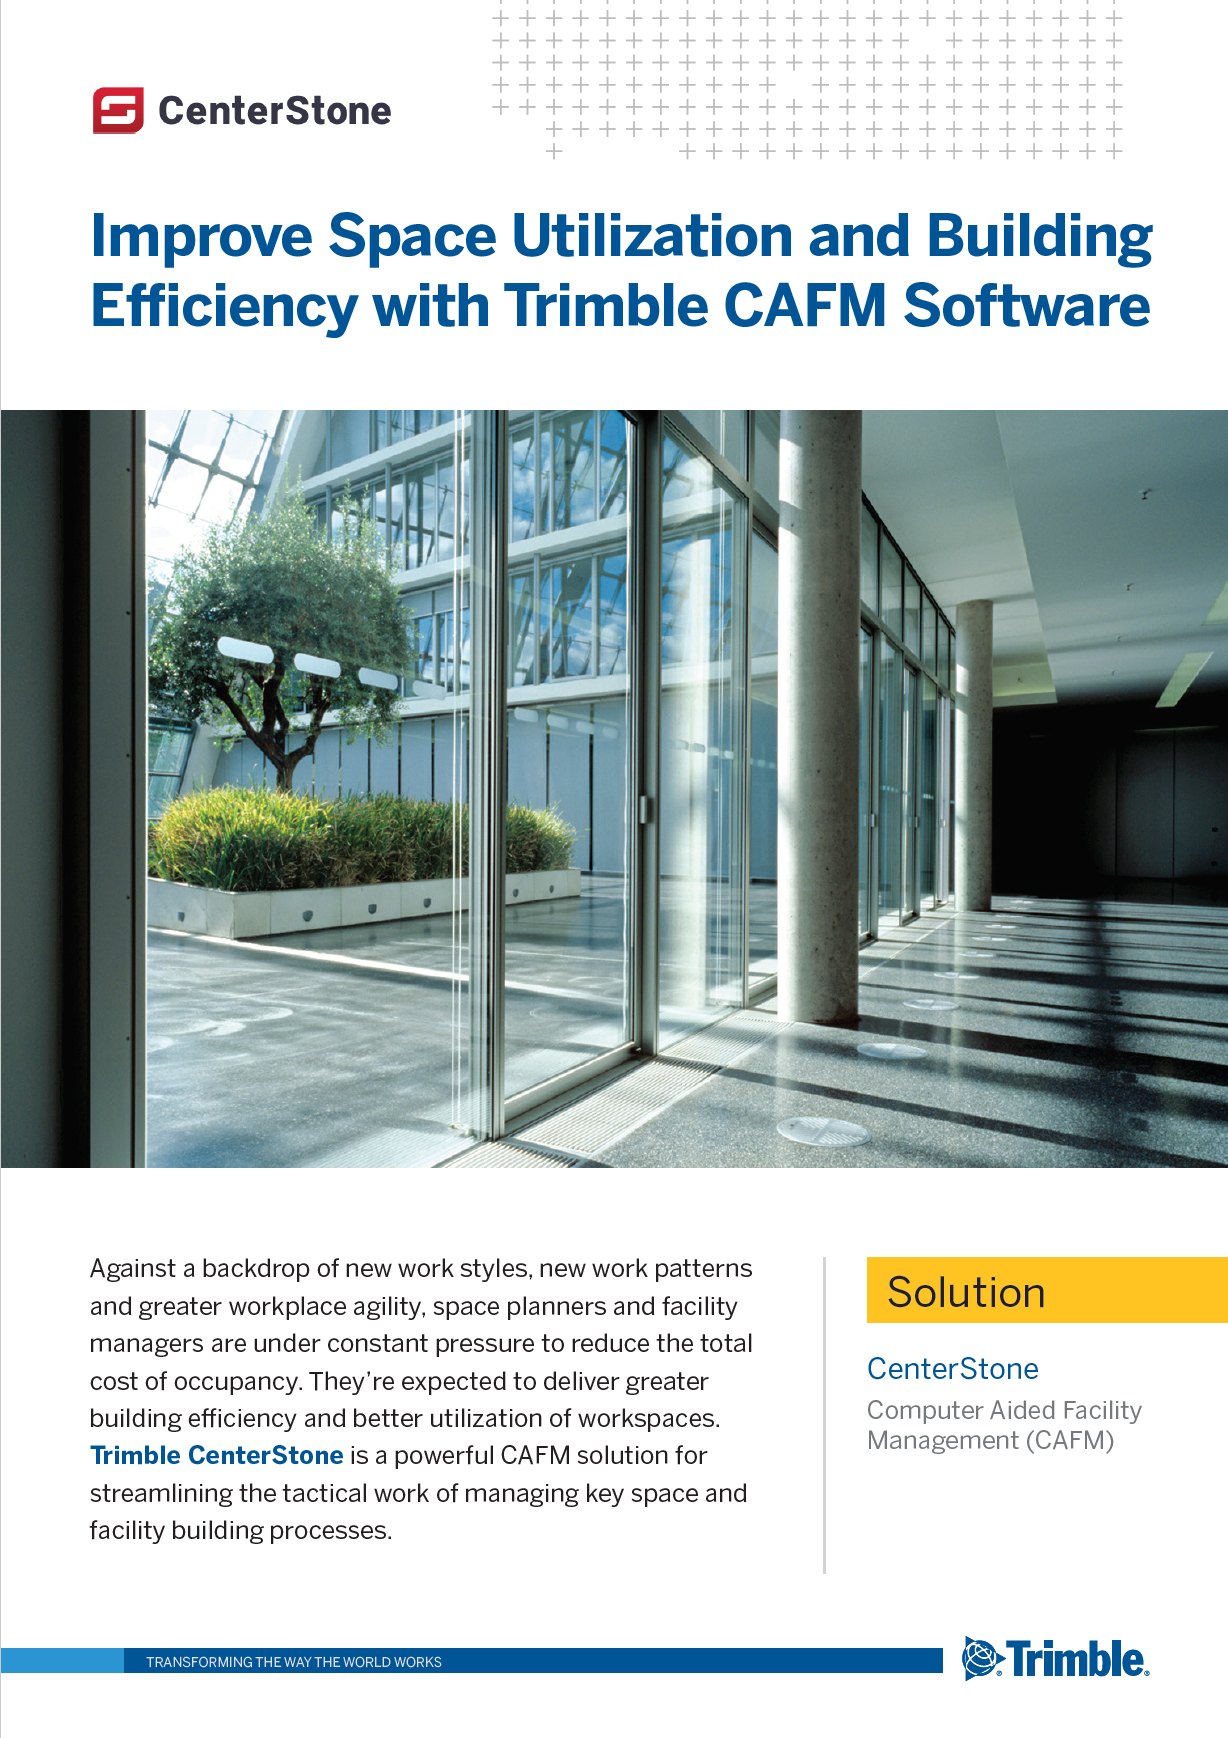 CenterStone – CAFM Facility Management Software